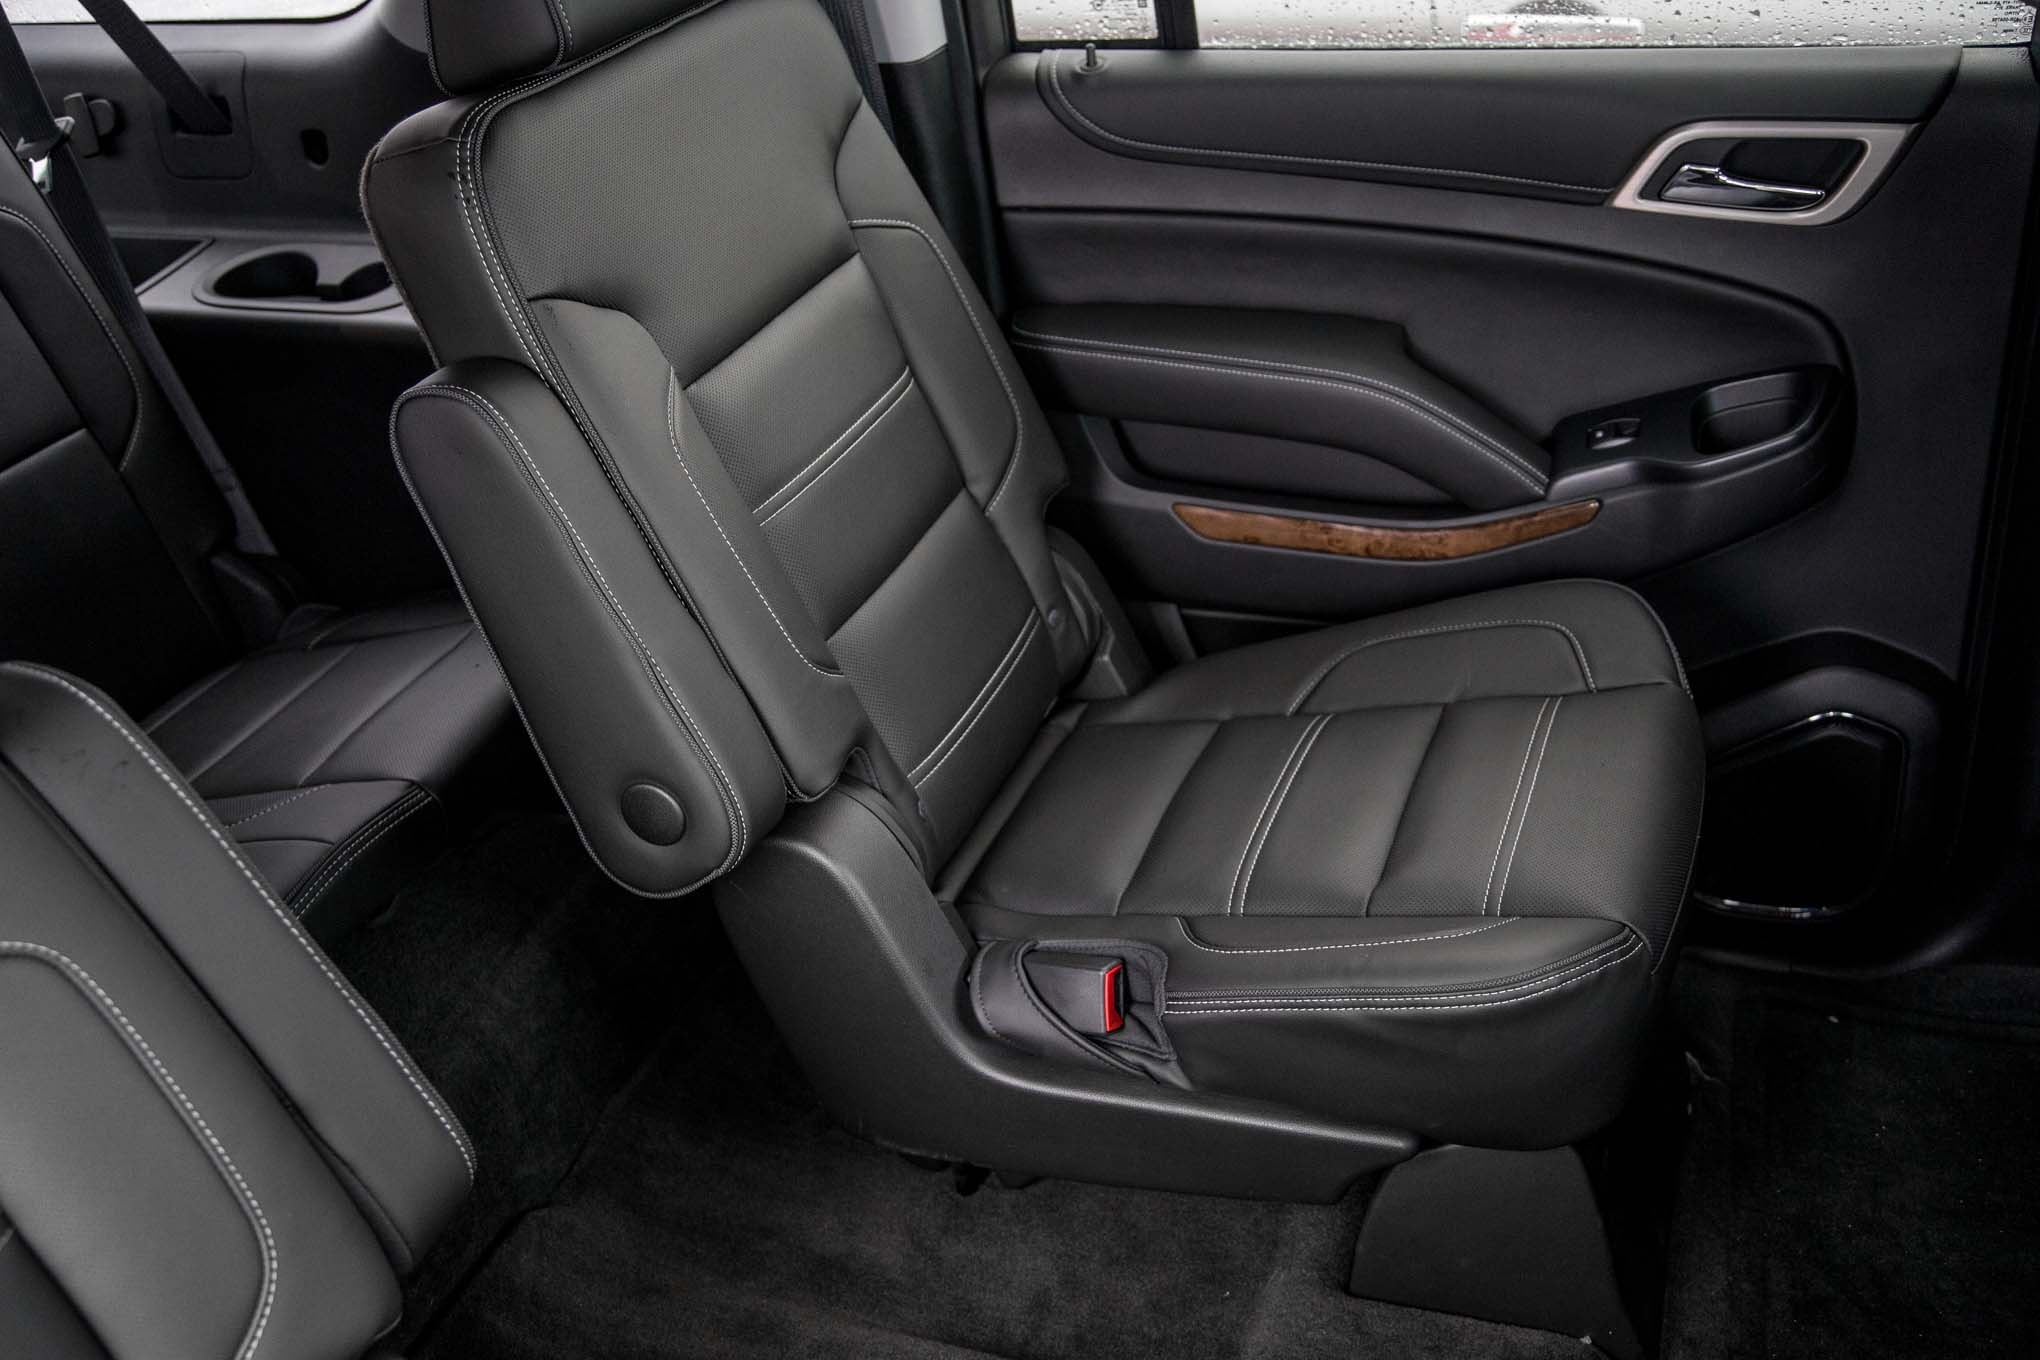 2015 Gmc Yukon Xl Center Seat Interior (Photo 2 of 10)